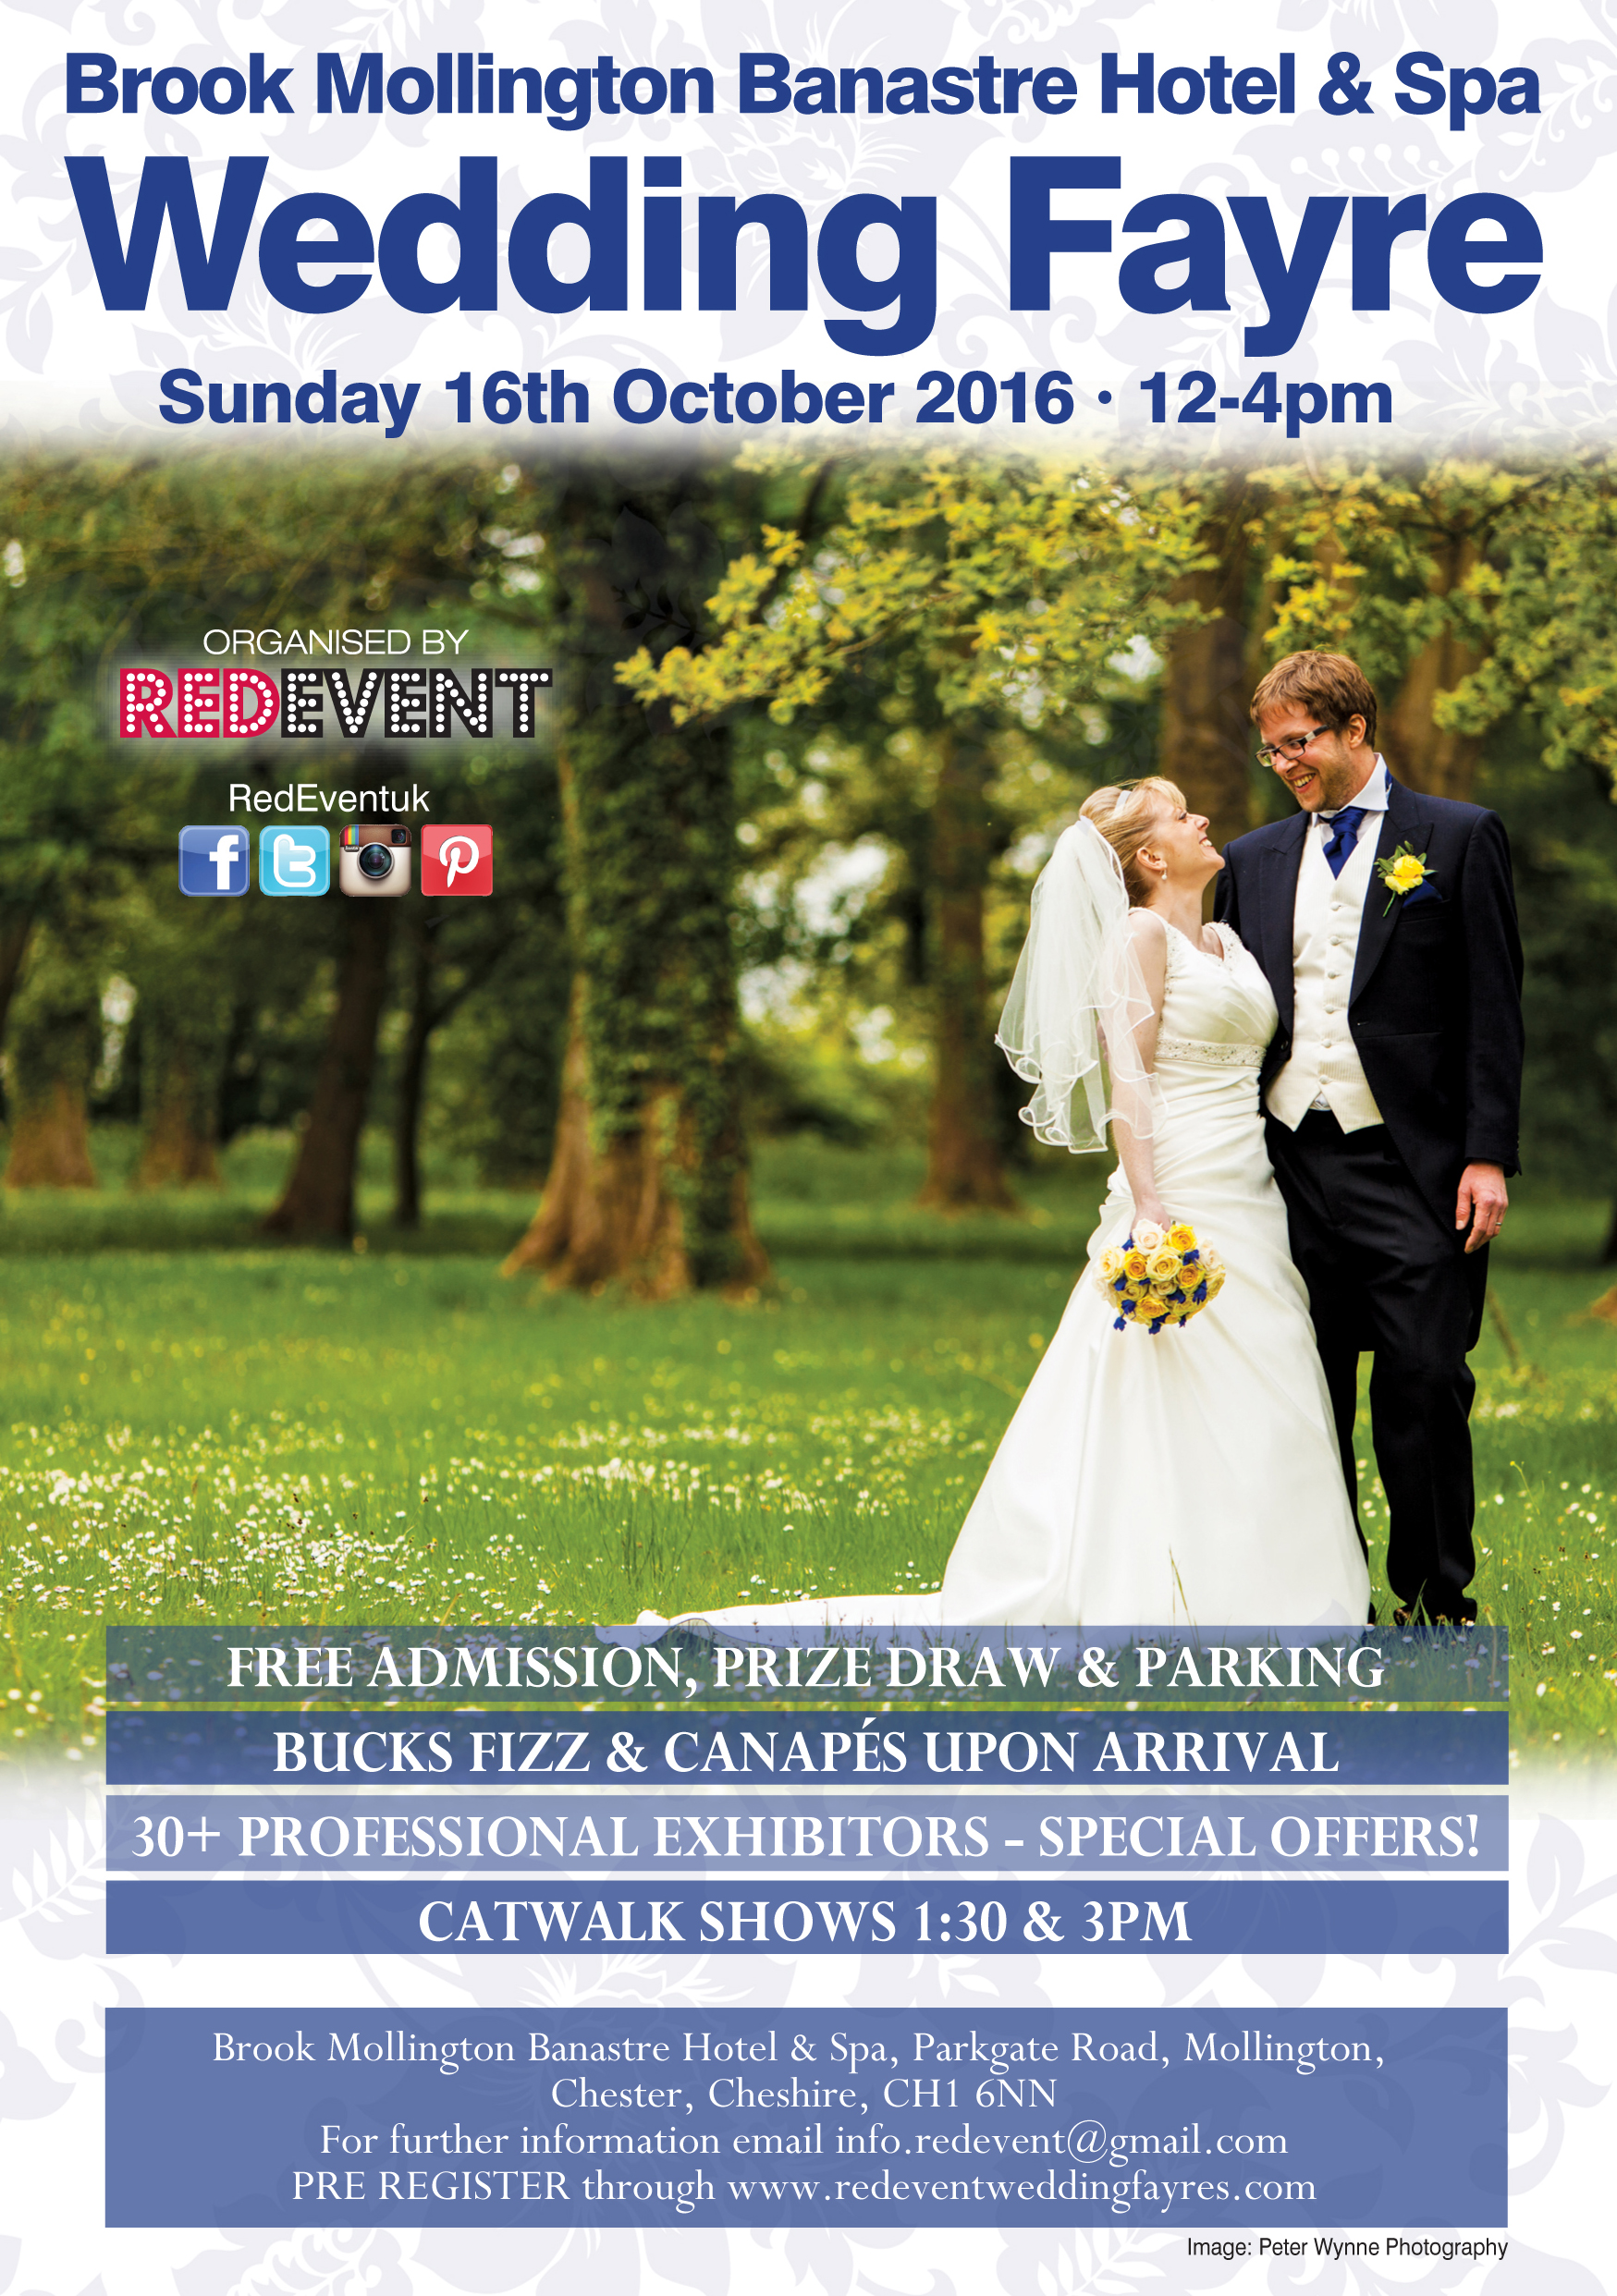 Brook Mollington Banastre Hotel & Spa Cheshire Wedding Fayre